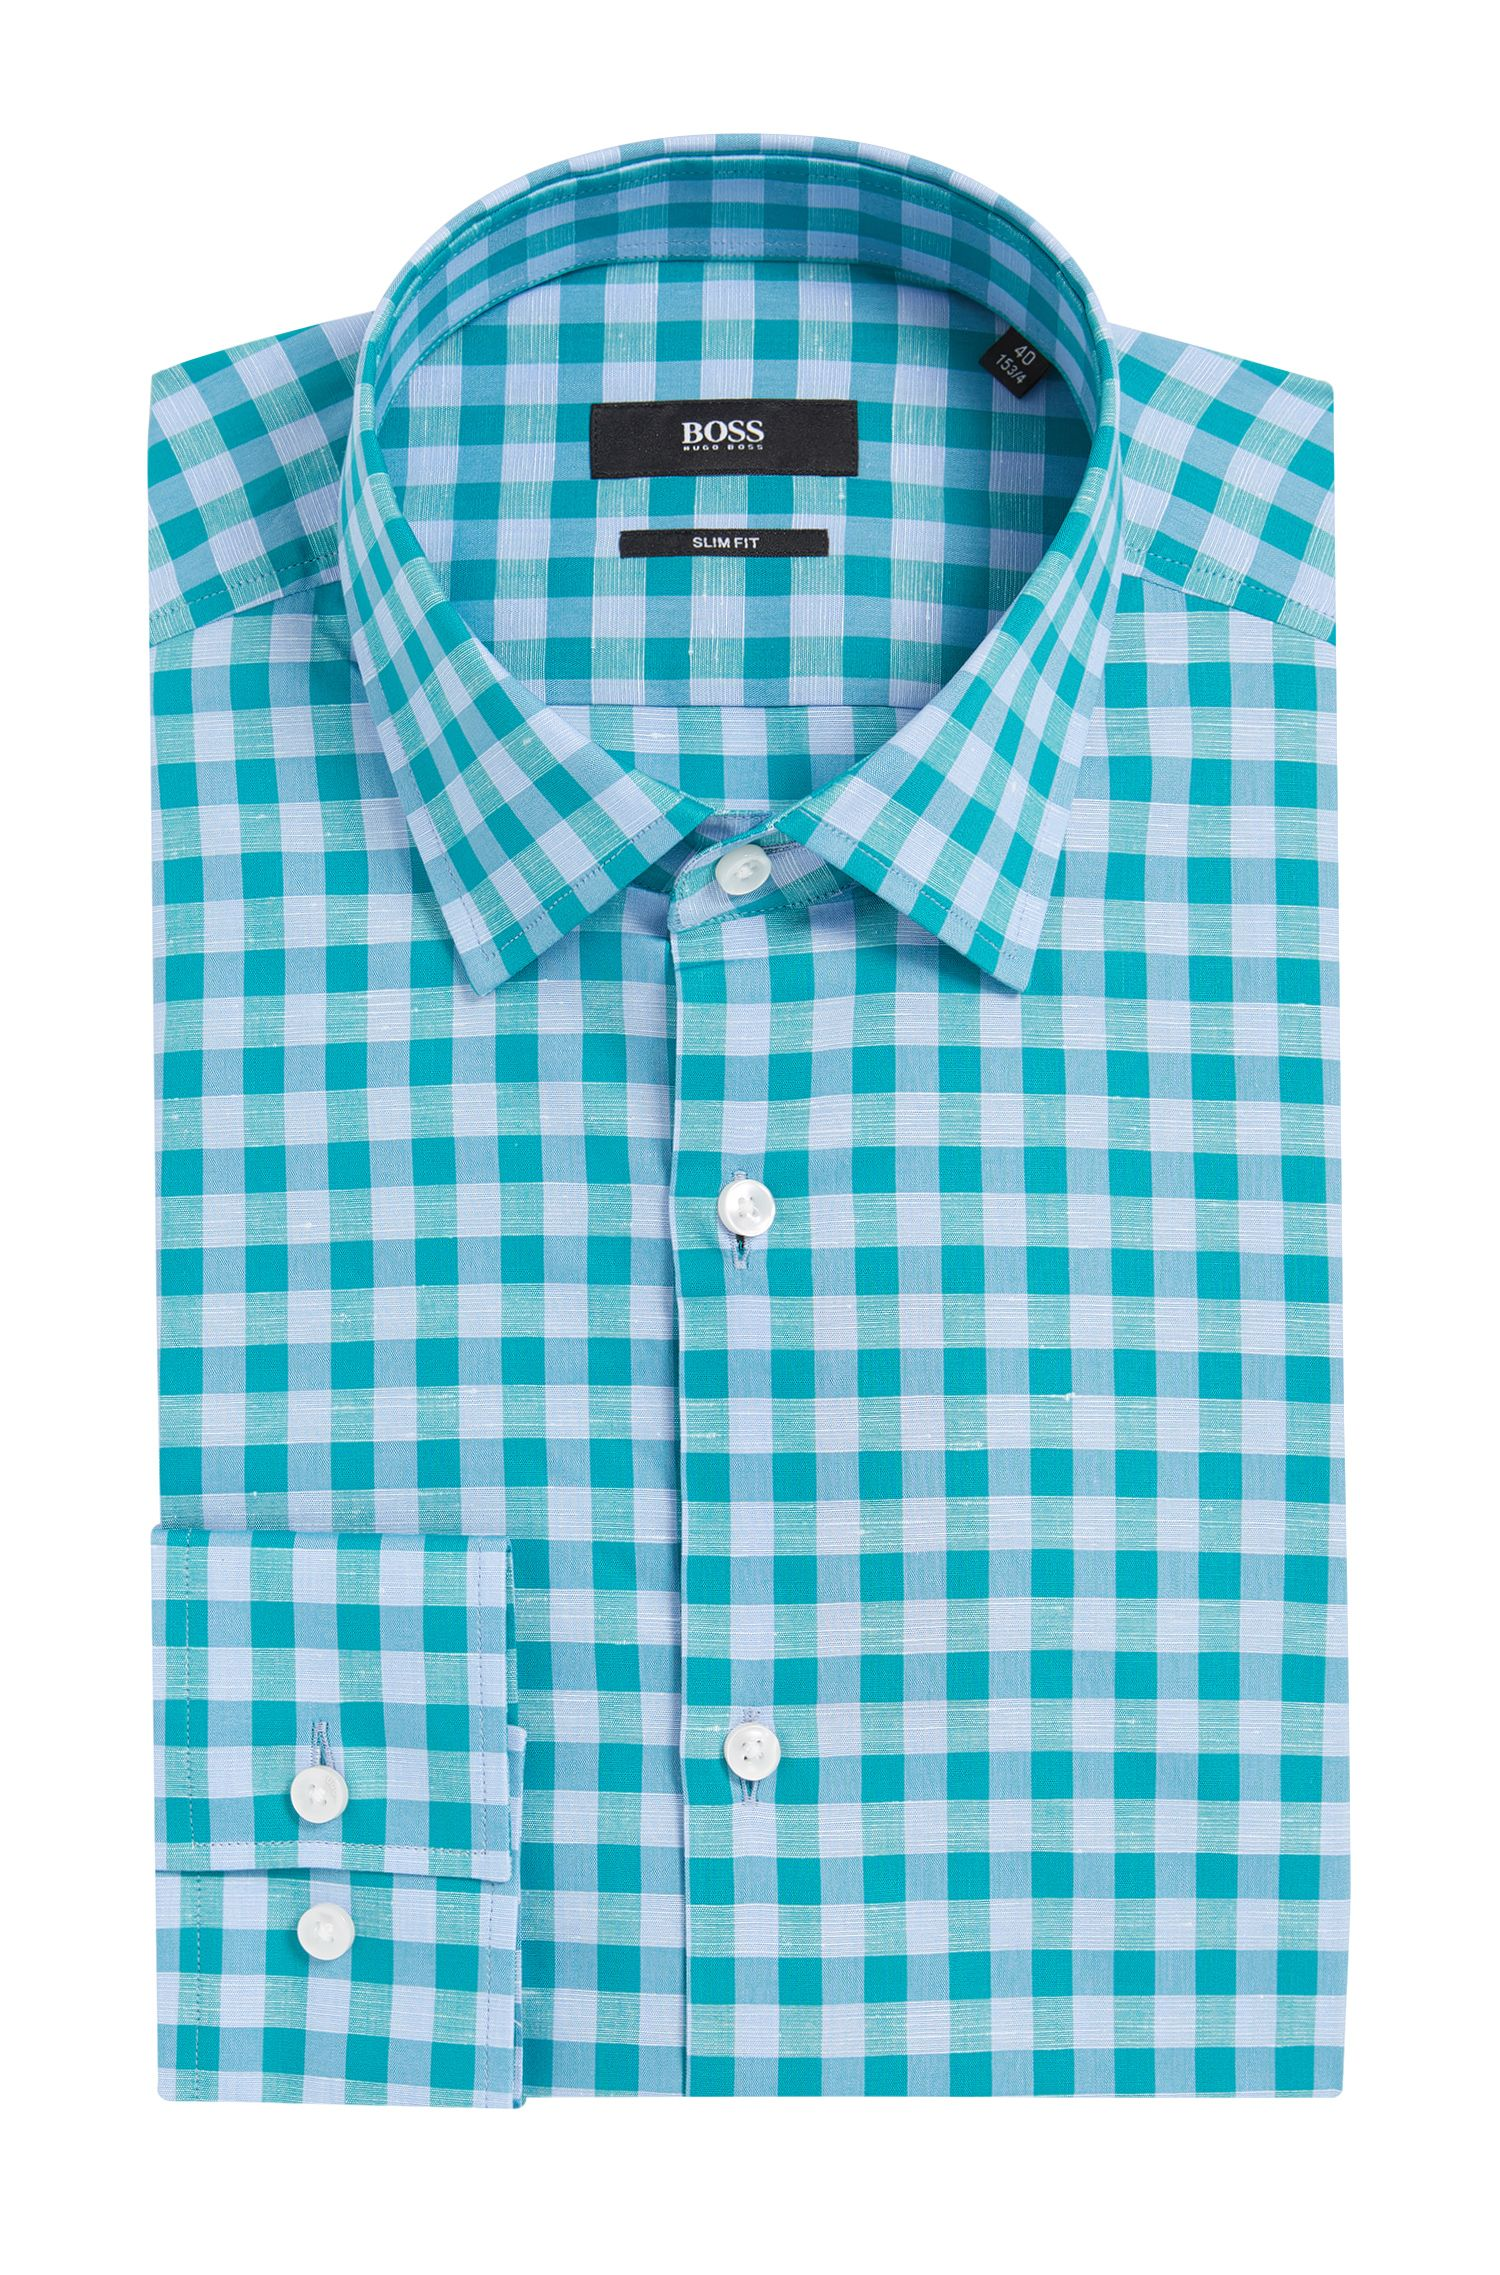 Gingham Italian Cotton Linen Dress Shirt, Slim Fit | Jenno